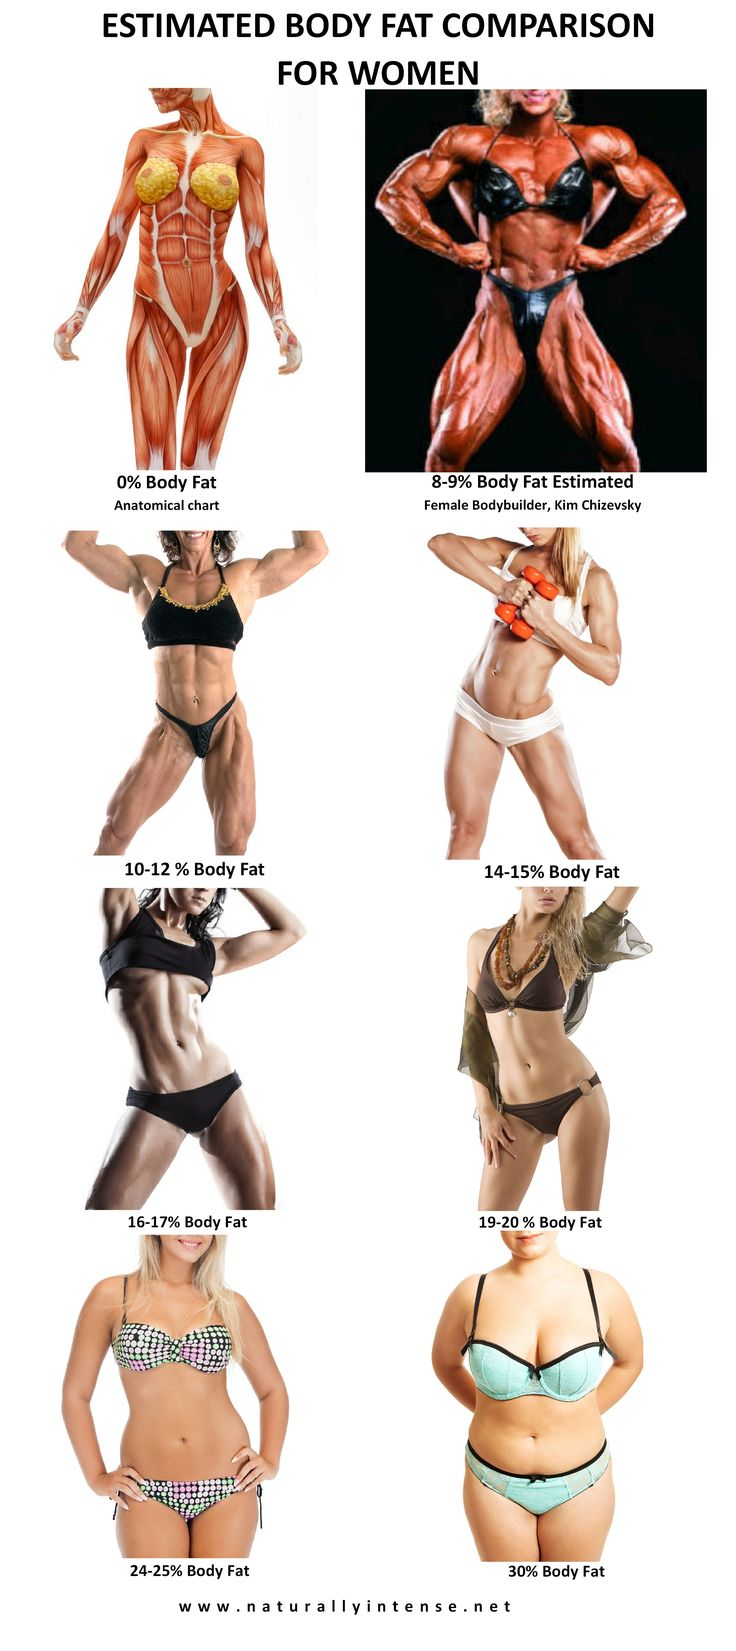 Body fat percentage comparison photographs for women